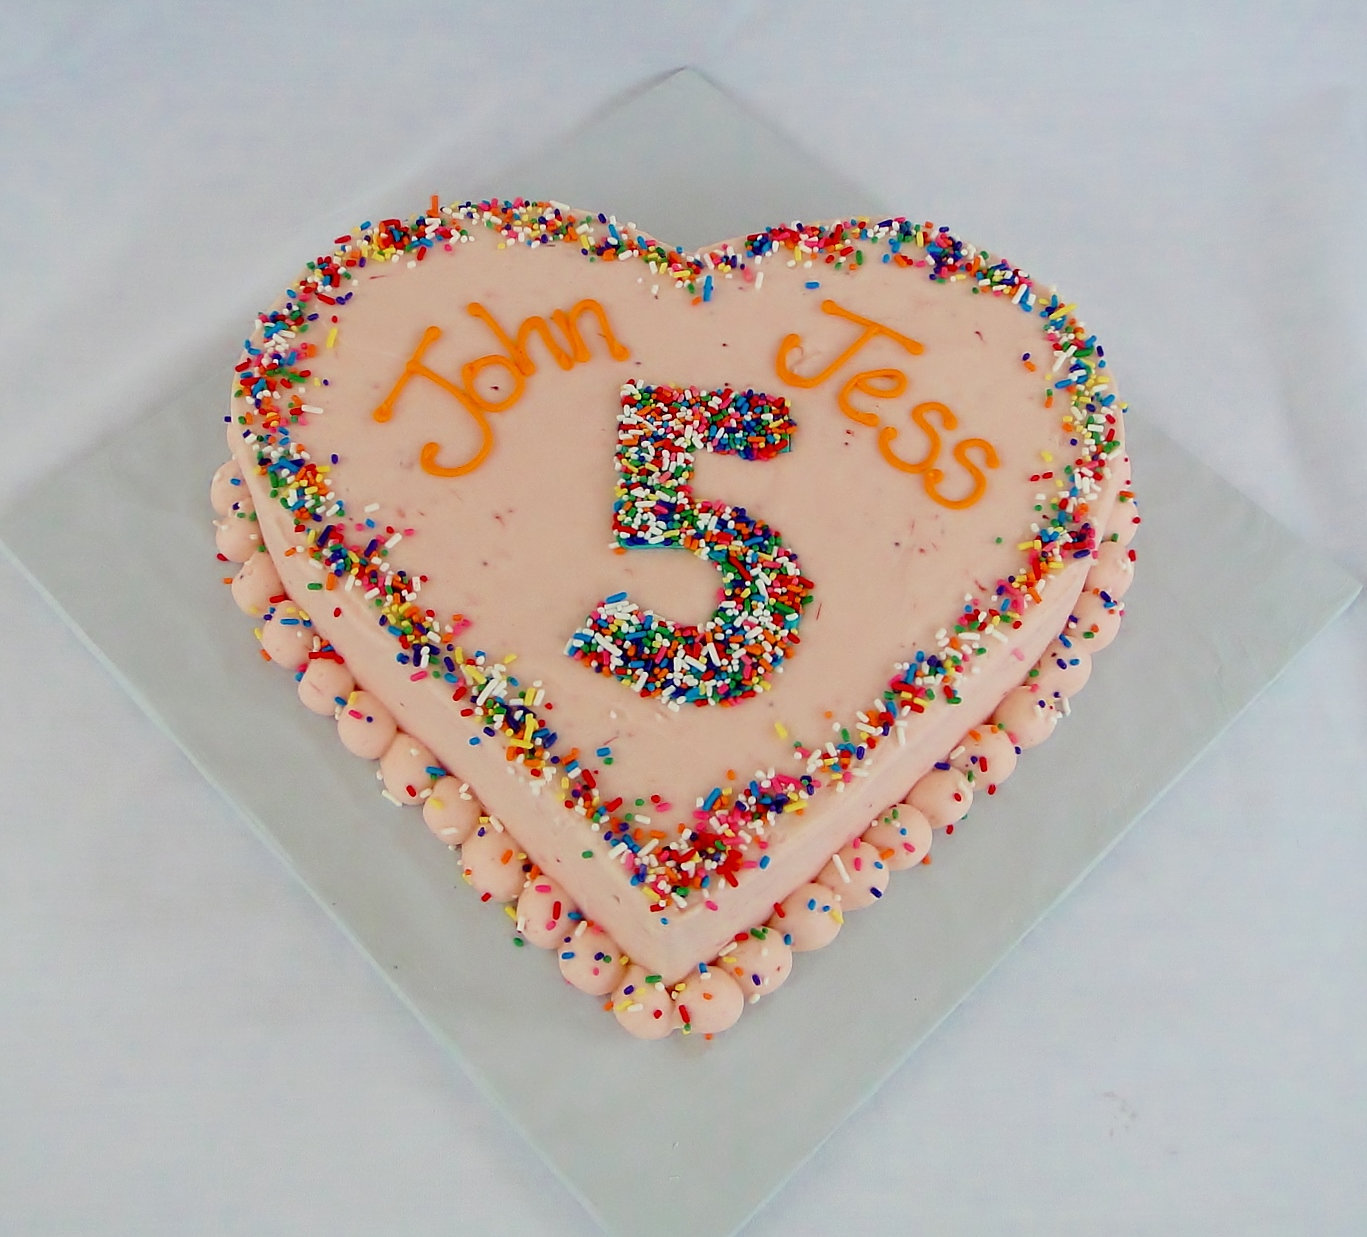 Heart Shaped Anniversary Cake Images : The Swirl Cakes Custom Cakes Triad NC Heart Shaped ...